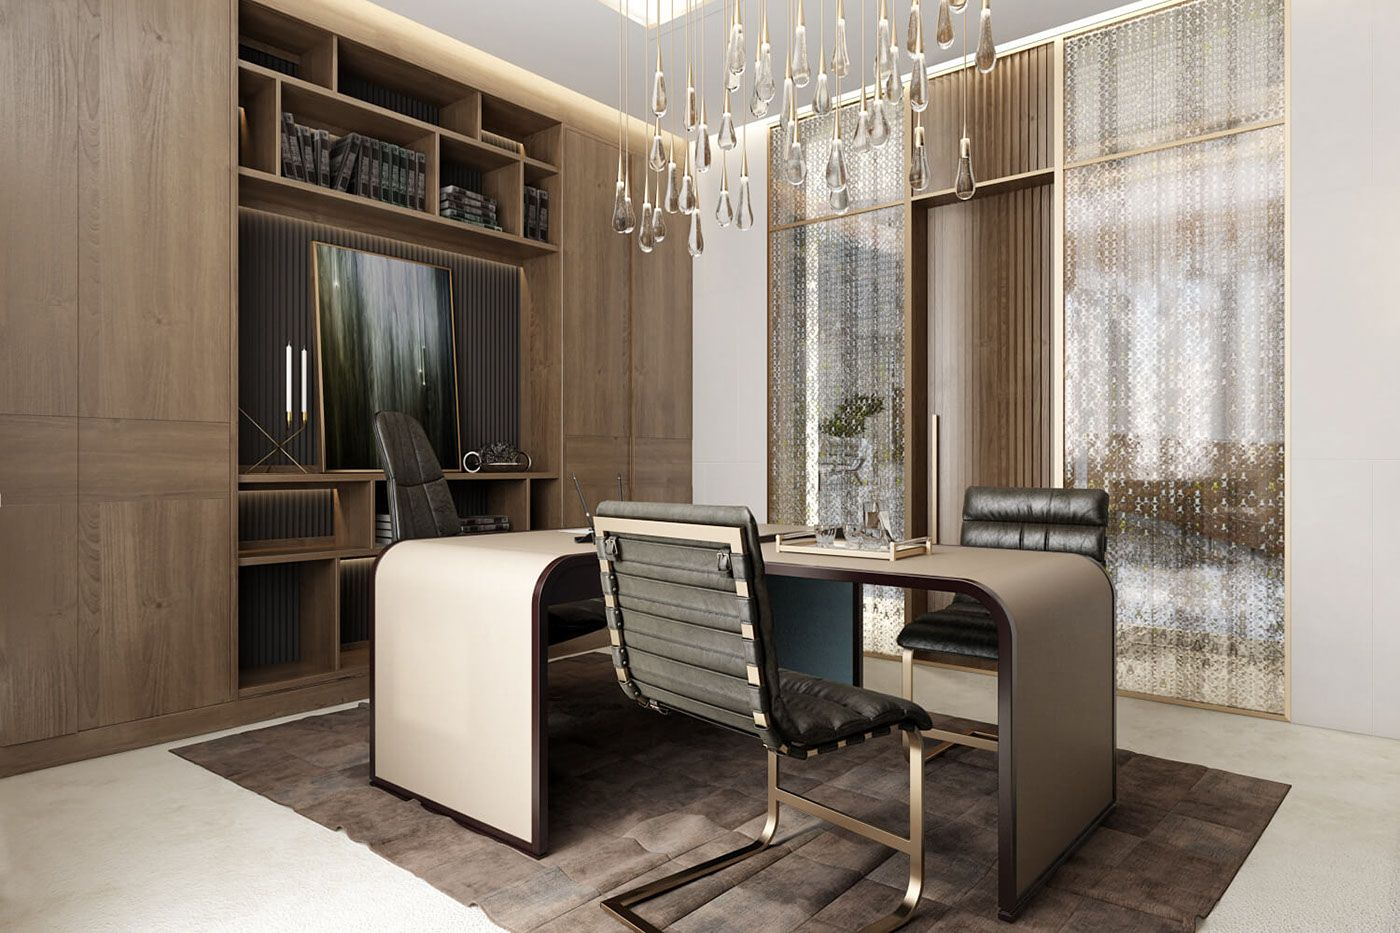 Executive Office Reception Design Ceo Office Design Architectural Rendering By Archicgi On